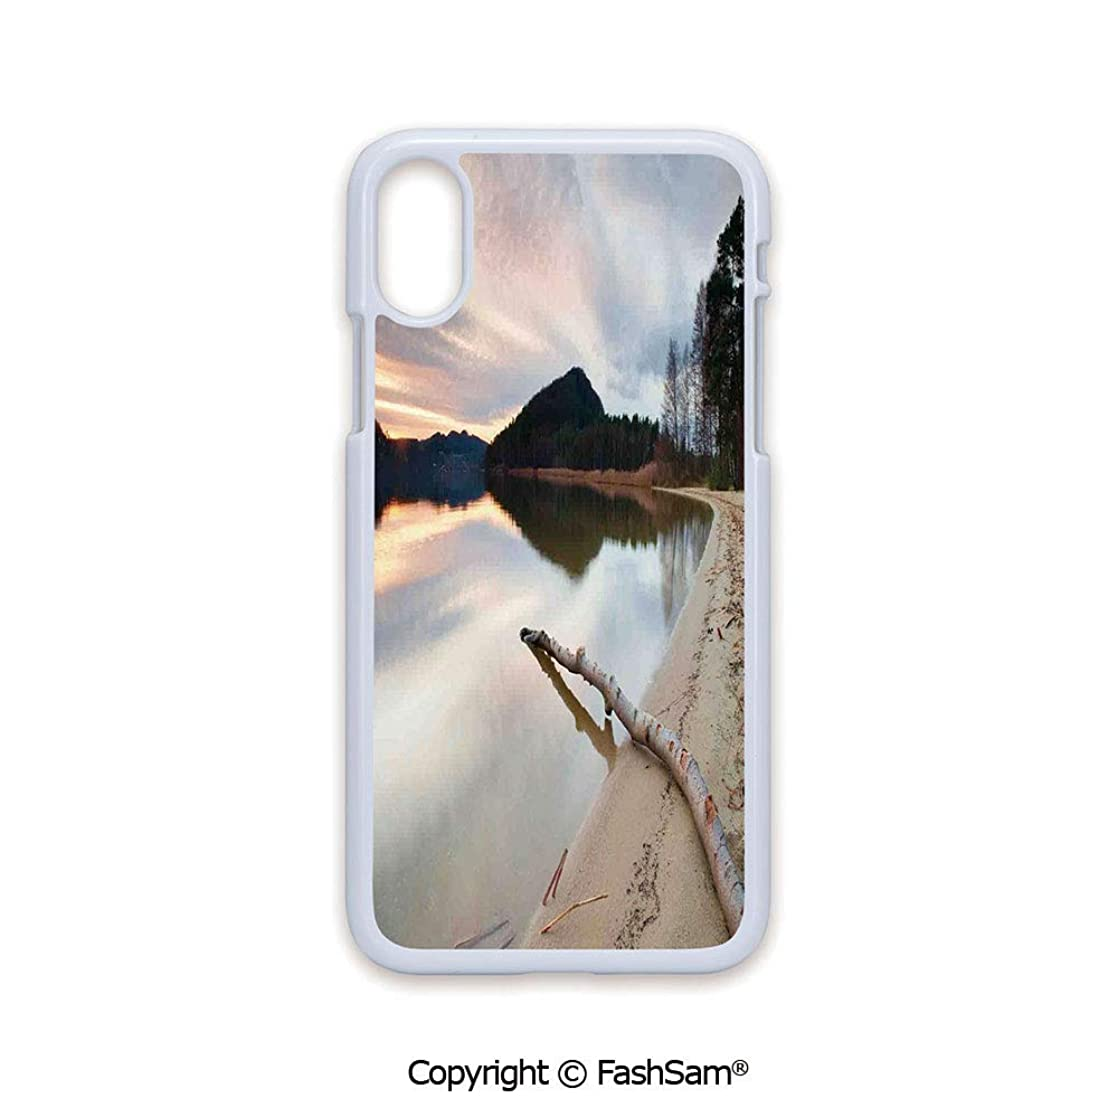 Plastic Rigid Mobile Phone case Compatible with iPhone X Black Edge Landscape of Lake Shore with Dead Tree Trunk in The Water Digital Print 2D Print Hard Plastic Phone Case wwvydnyg75894